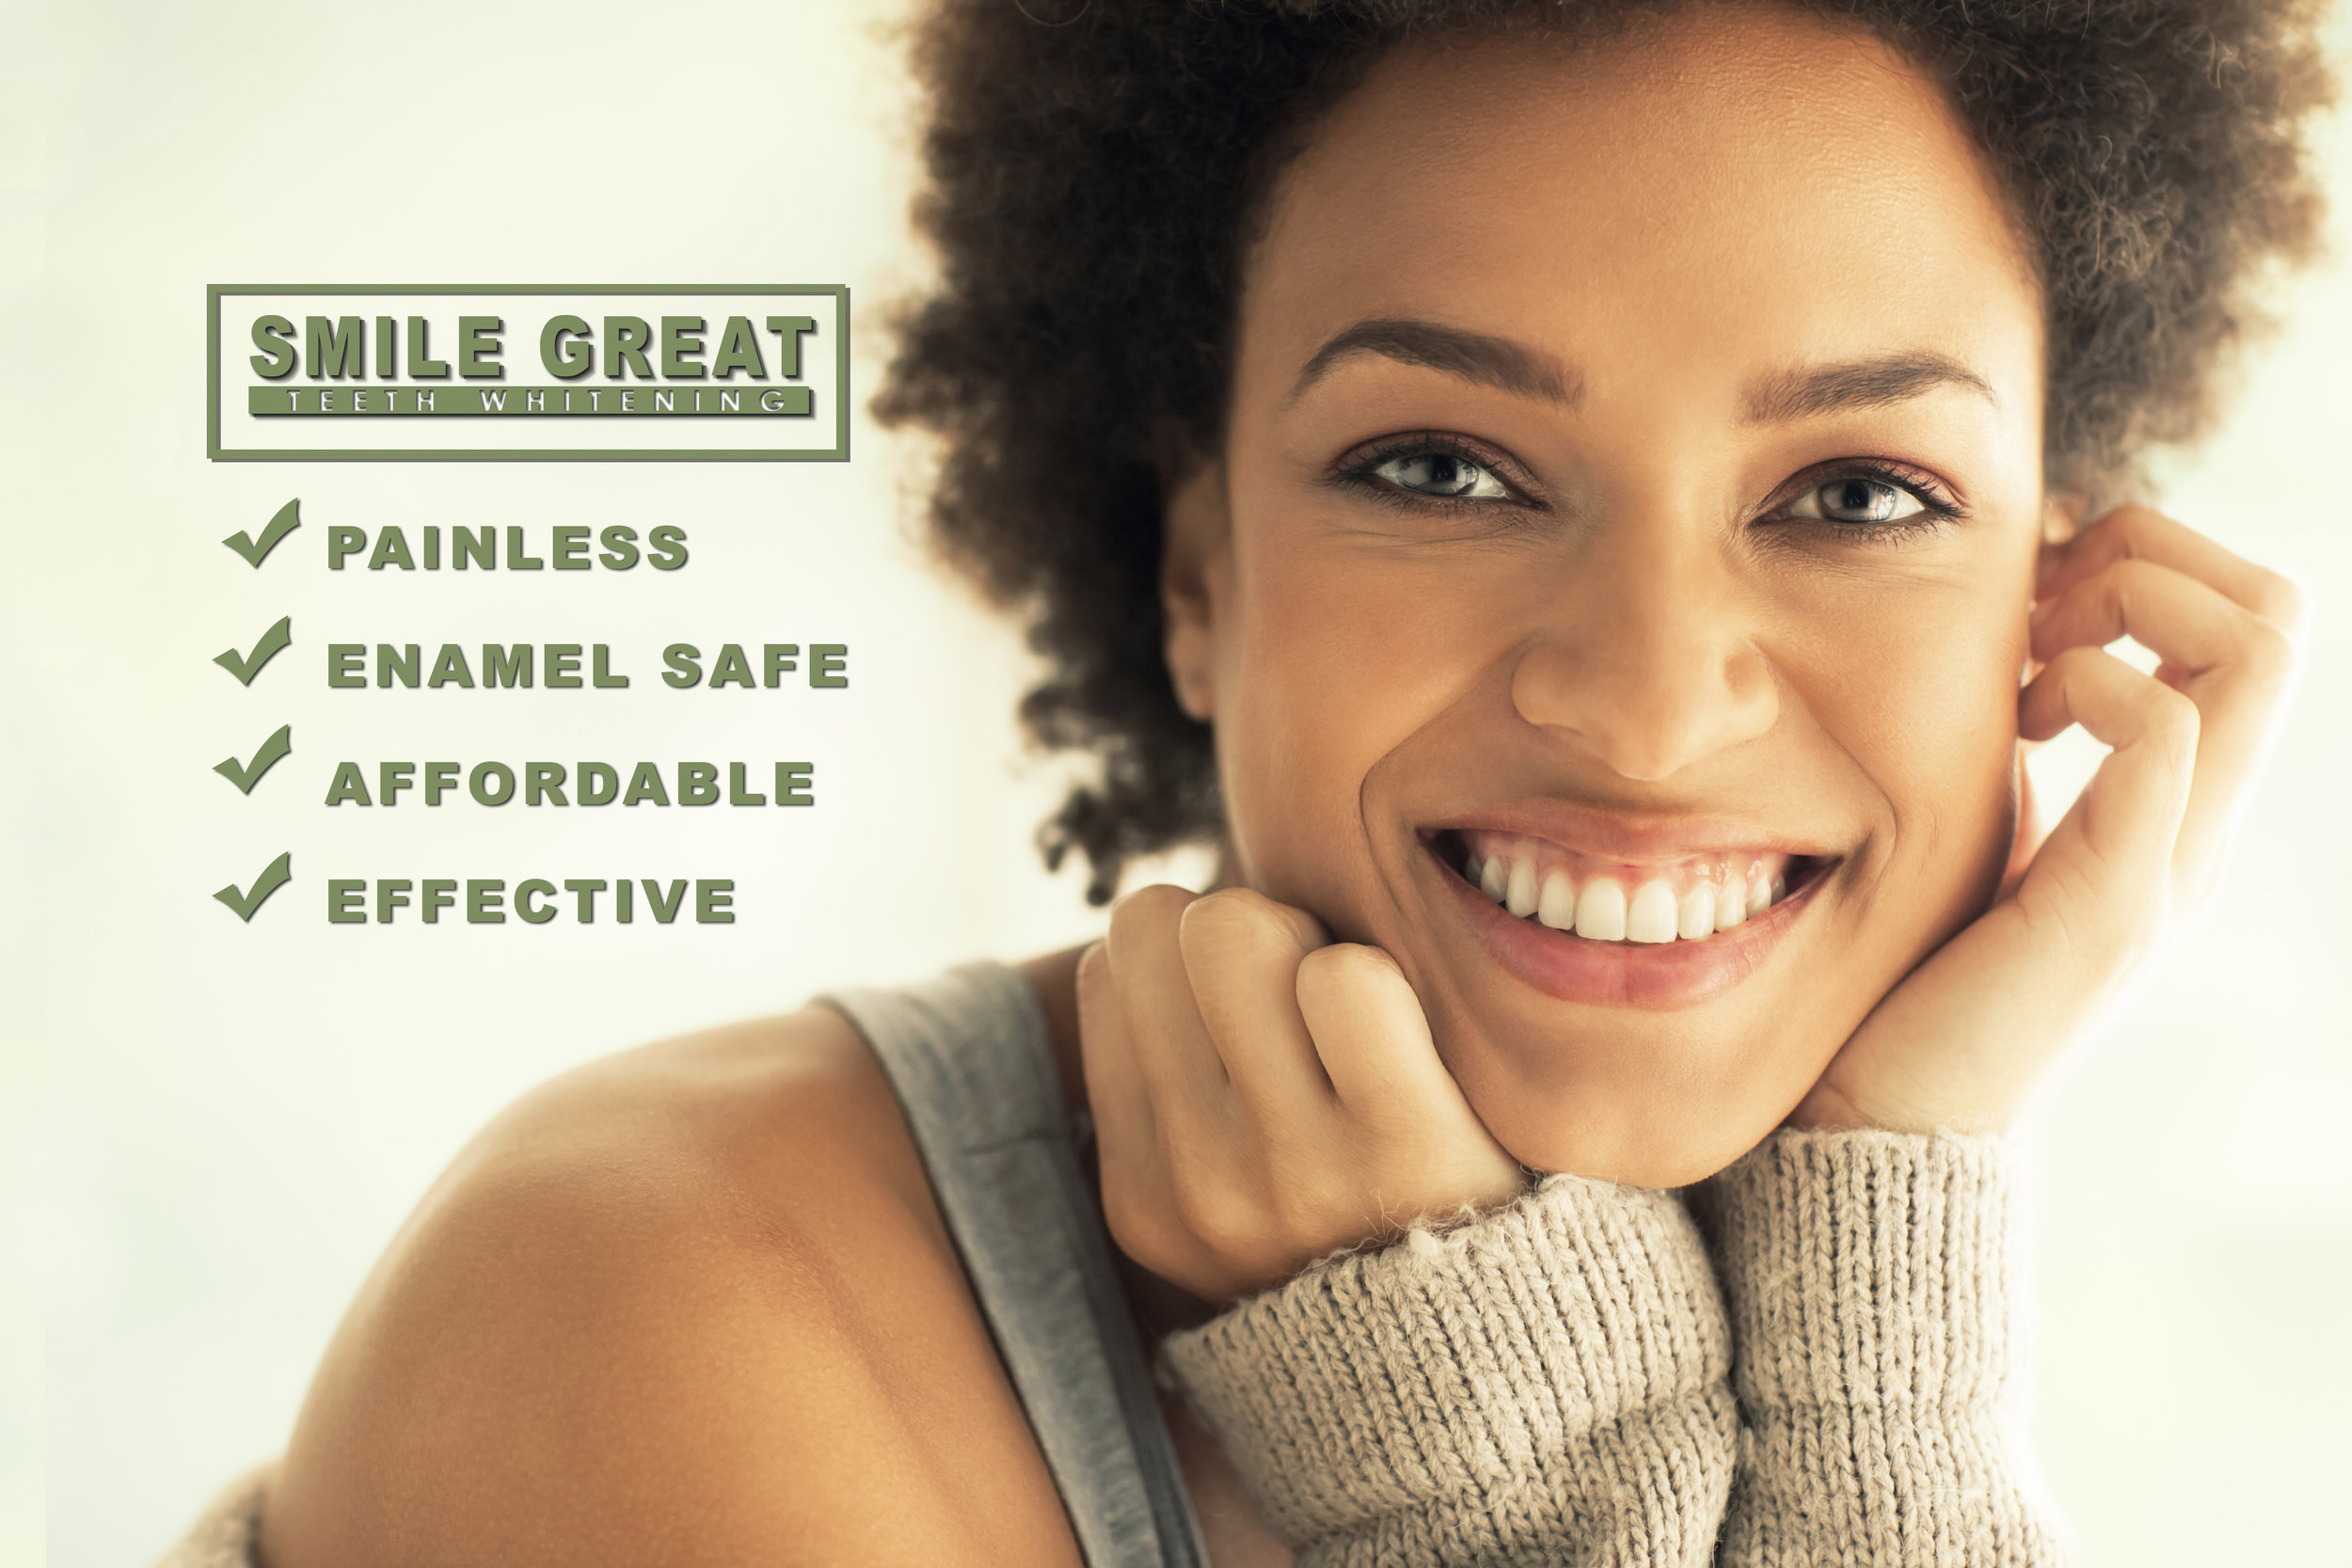 smile great head page.jpg